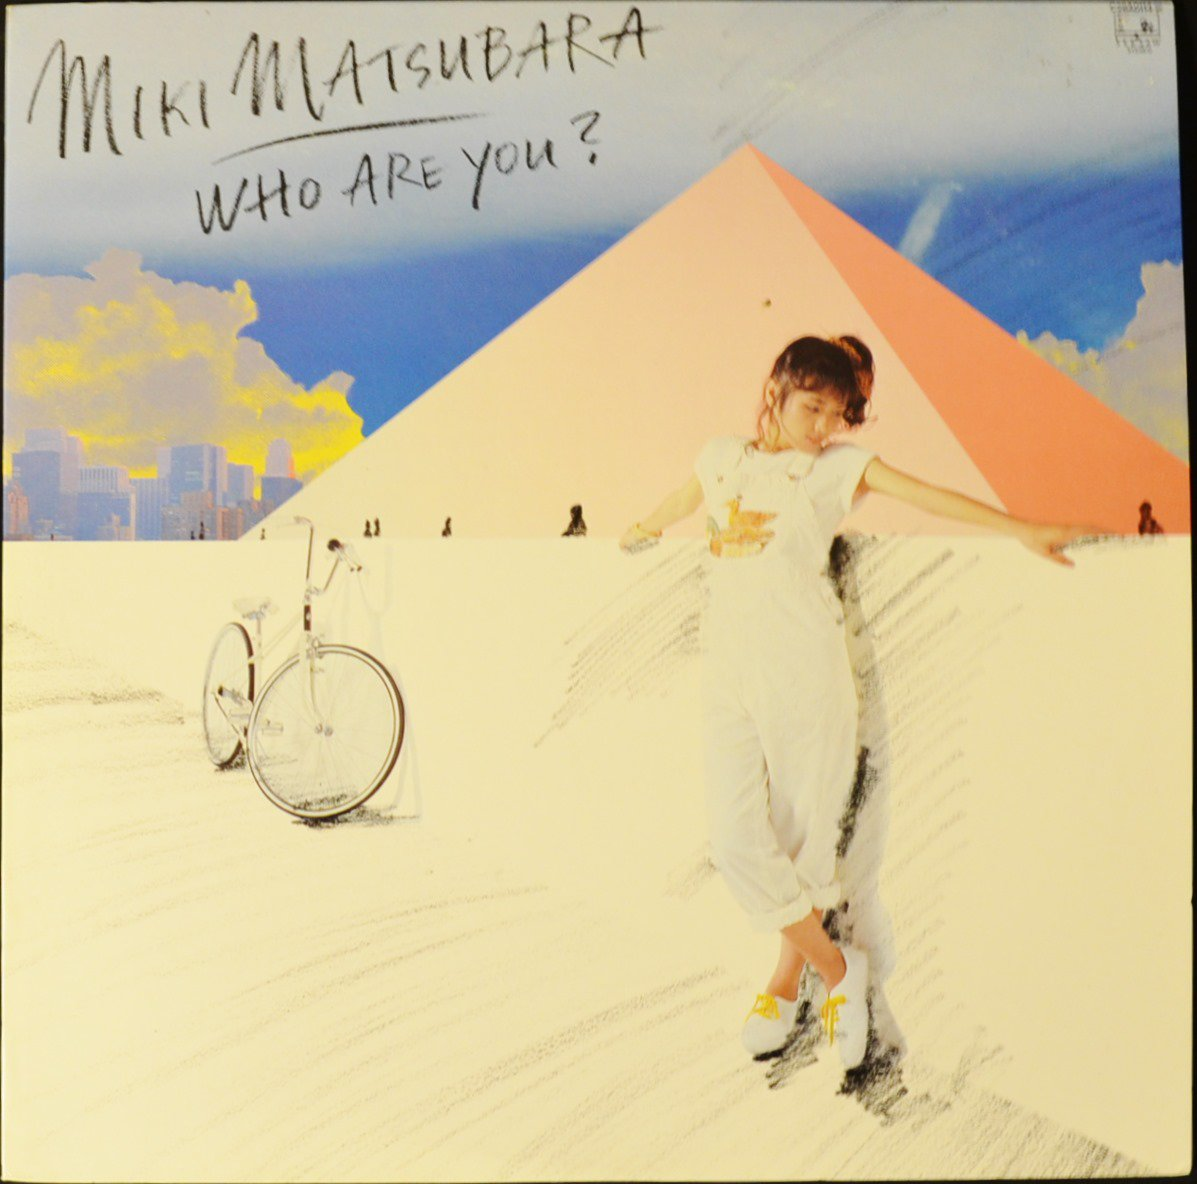 松原みき MIKI MATSUBARA / WHO ARE YOU? (LP)